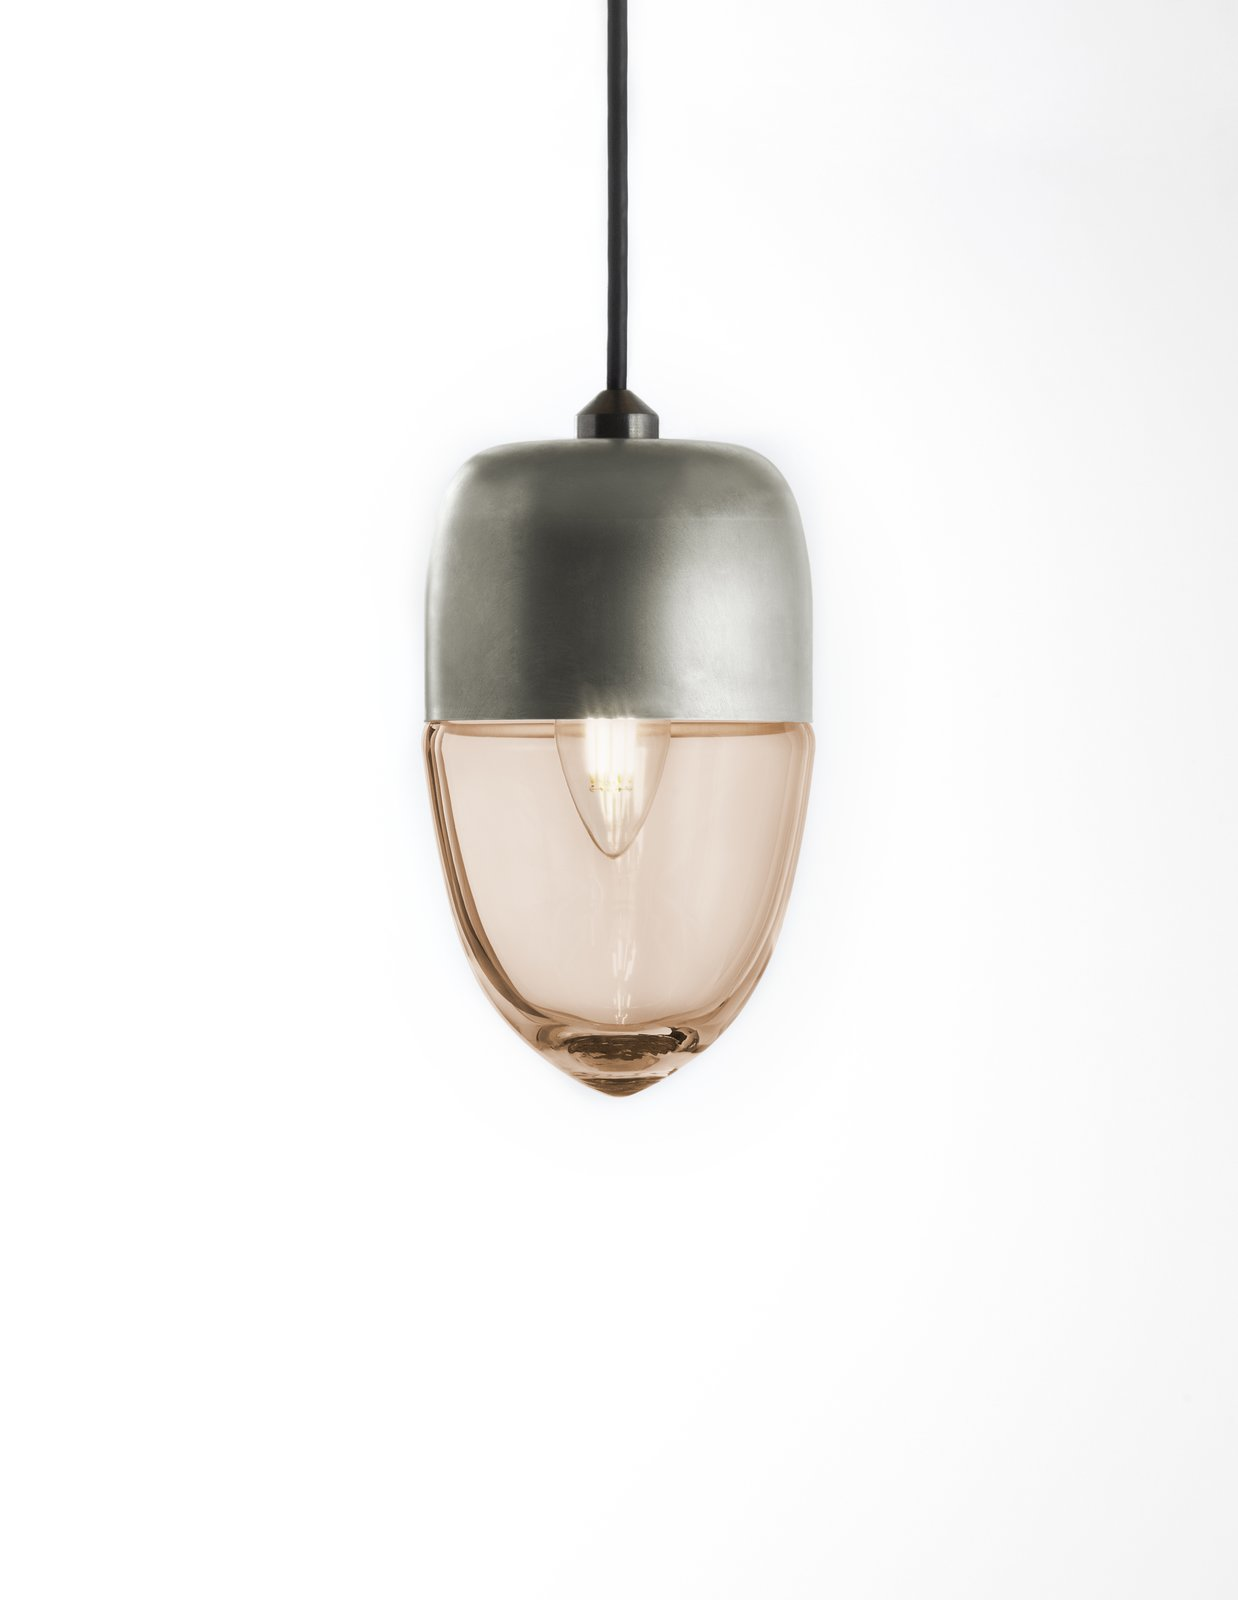 The Vela light has a thin, delicate shape and was designed as small floating vessel for lighting modern spaces. It can be used in multi-pendant installations.  60+ Modern Lighting Solutions by Dwell